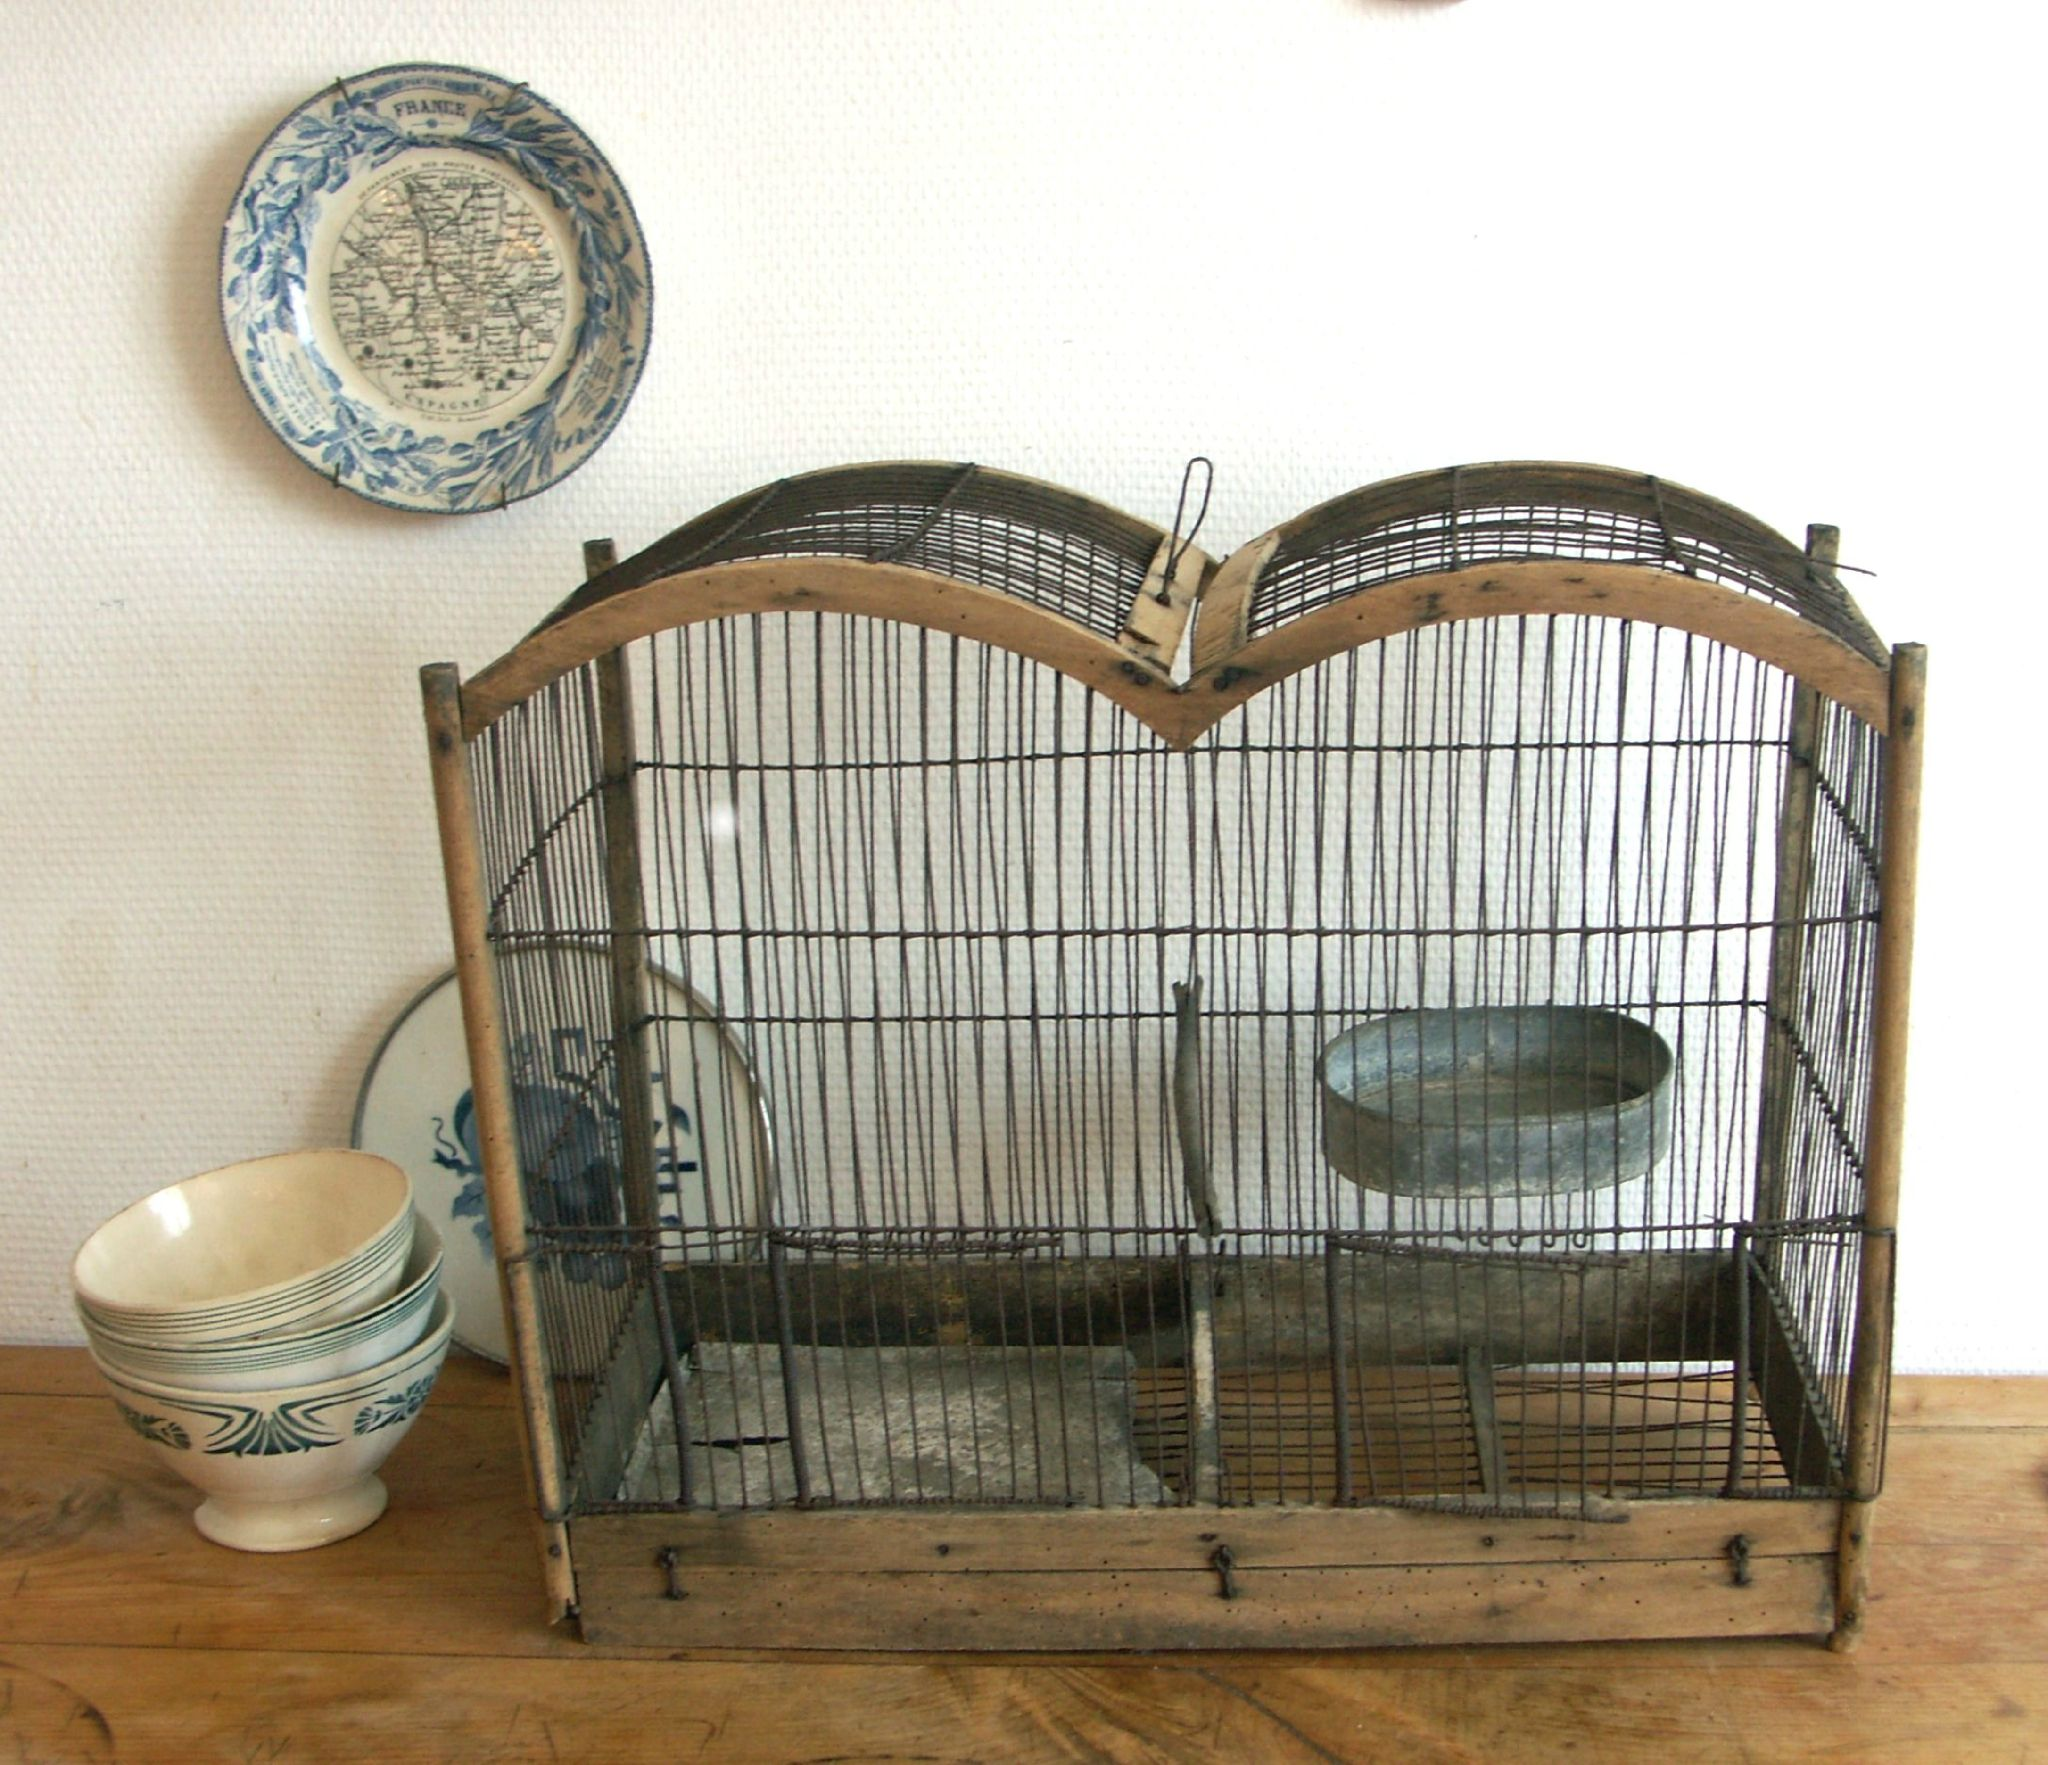 2013 08 cage oiseaux 2 ma petite brocante en ligne pinterest bird cages bird and brocante. Black Bedroom Furniture Sets. Home Design Ideas